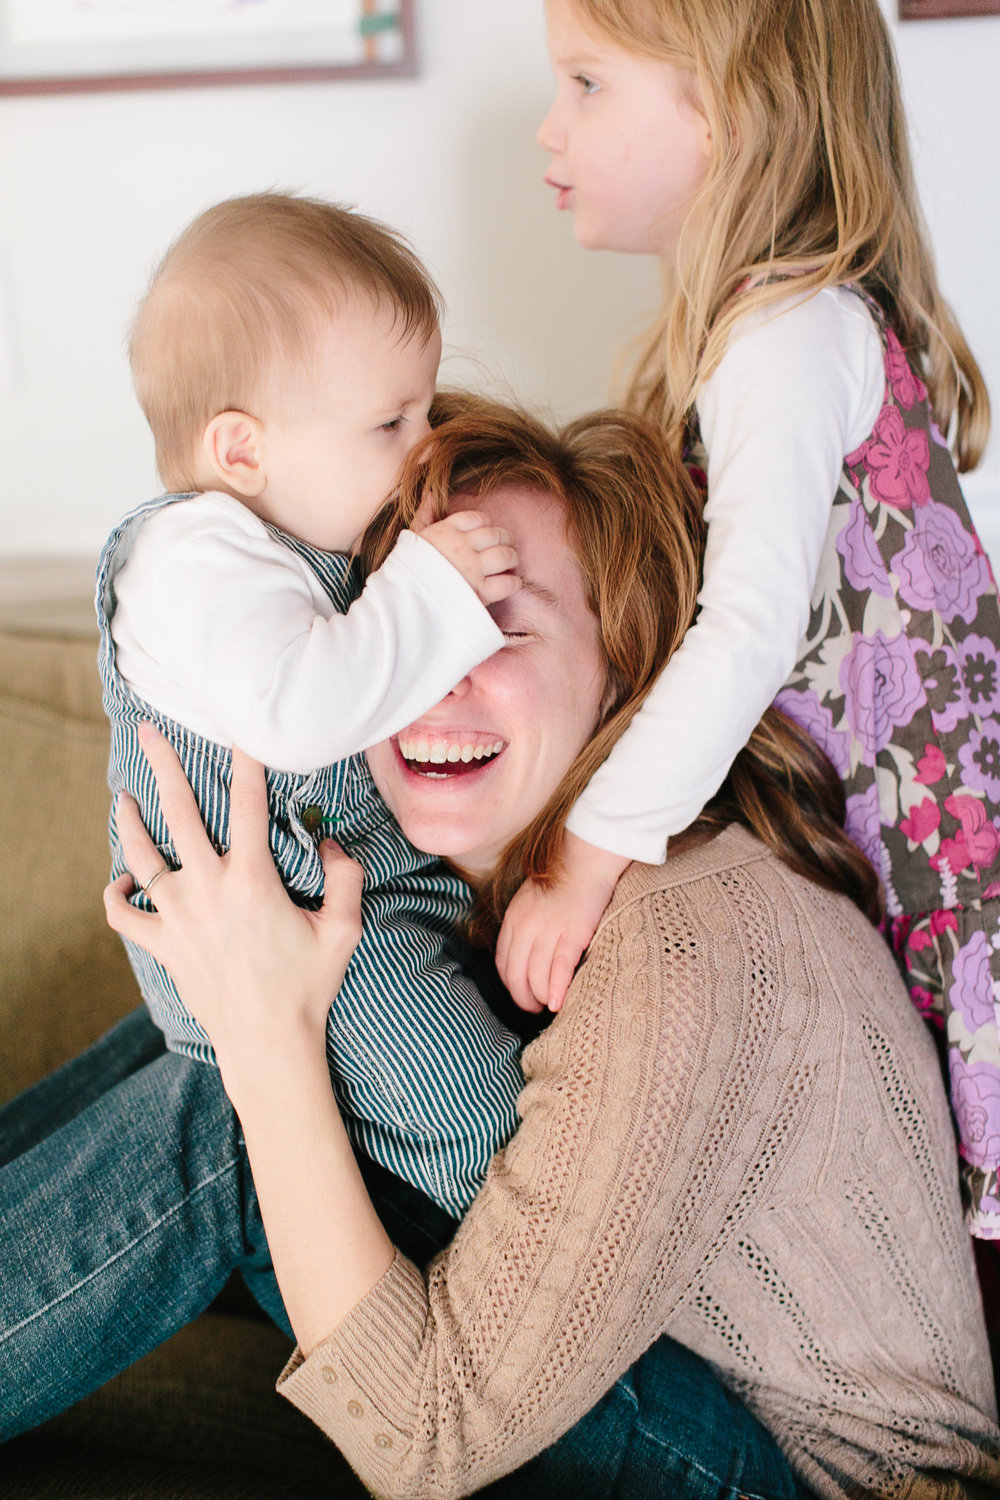 mom and kids playing in home family photo shoot